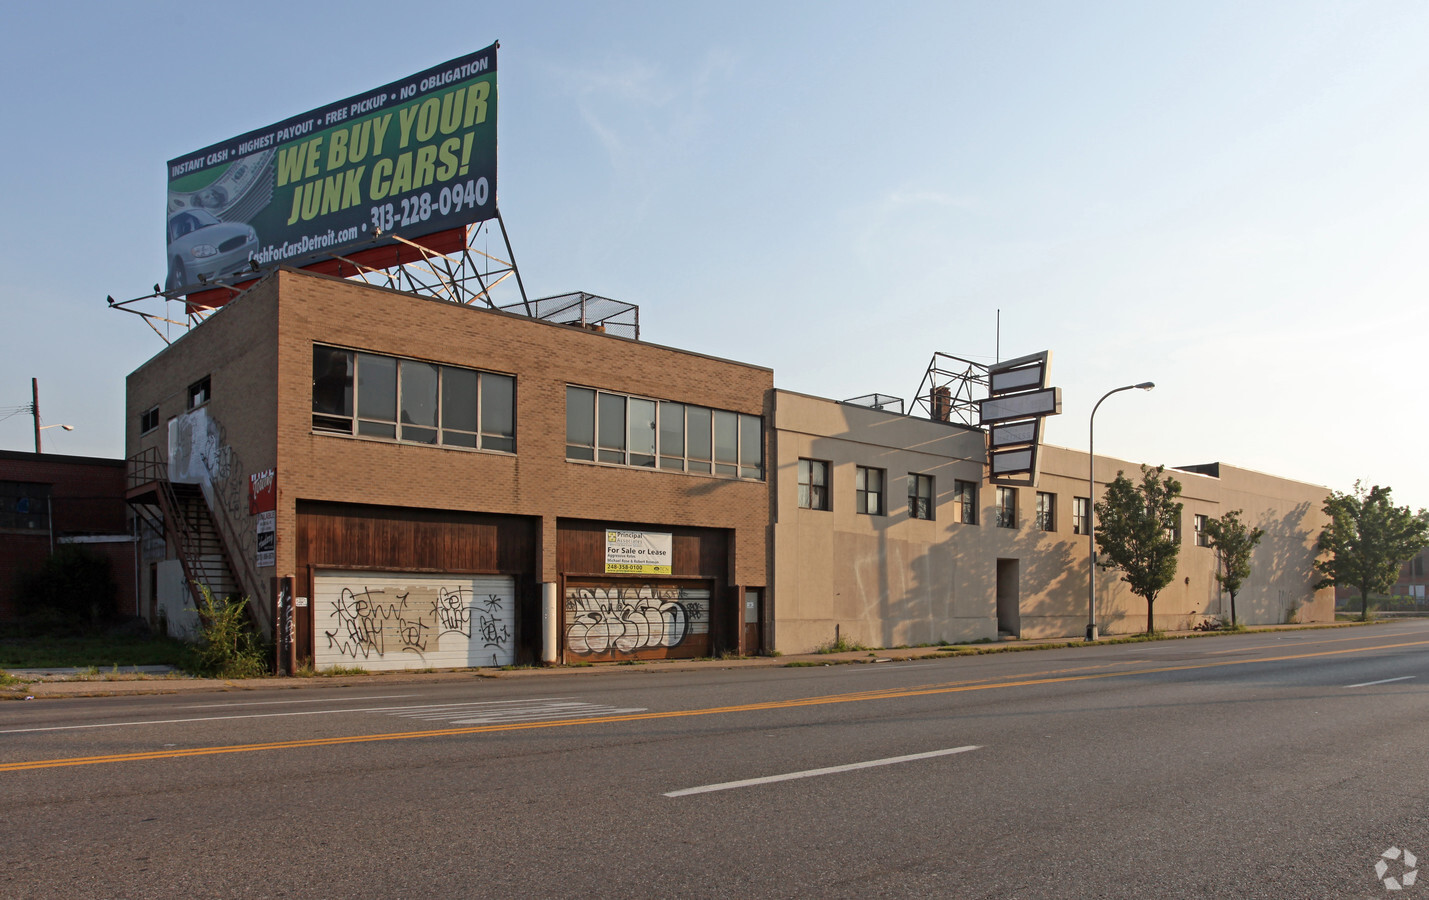 Warehouse For Sale Detroit 2760 W Warren Ave Detroit Mi 48208 Warehouse Property For